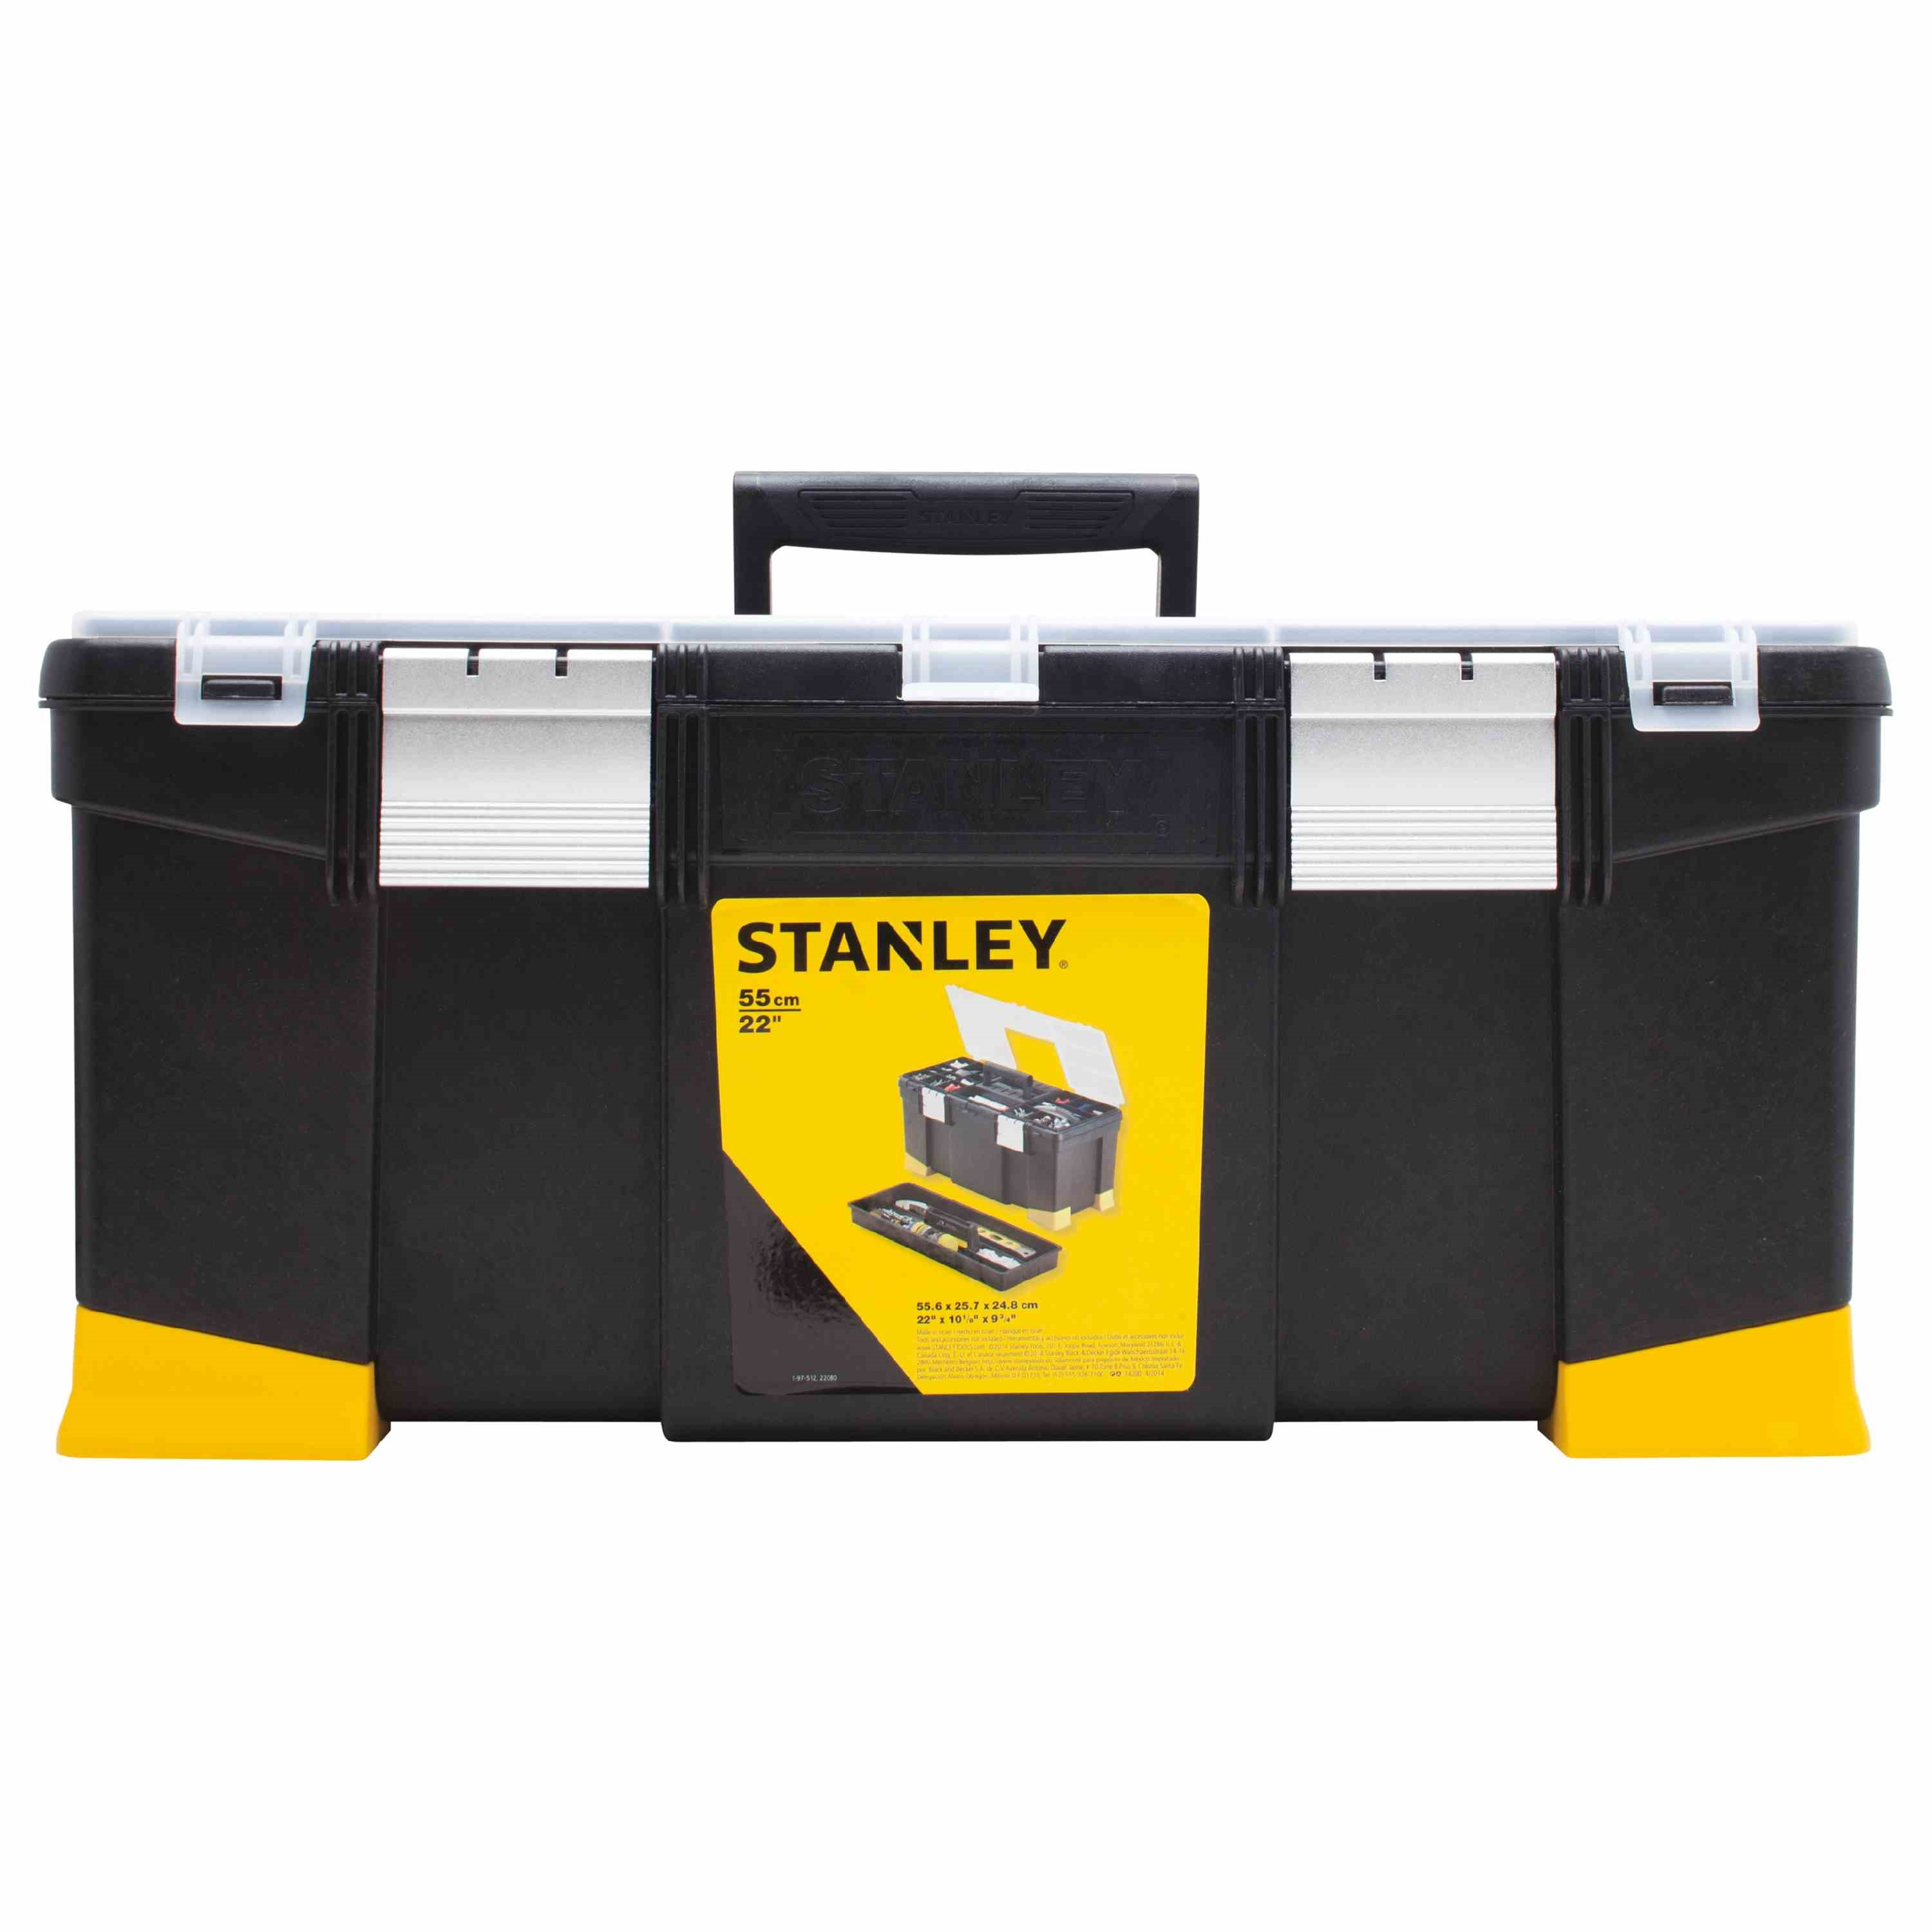 Stanley Tools - 22 in Toolbox  Organizer - 022080L